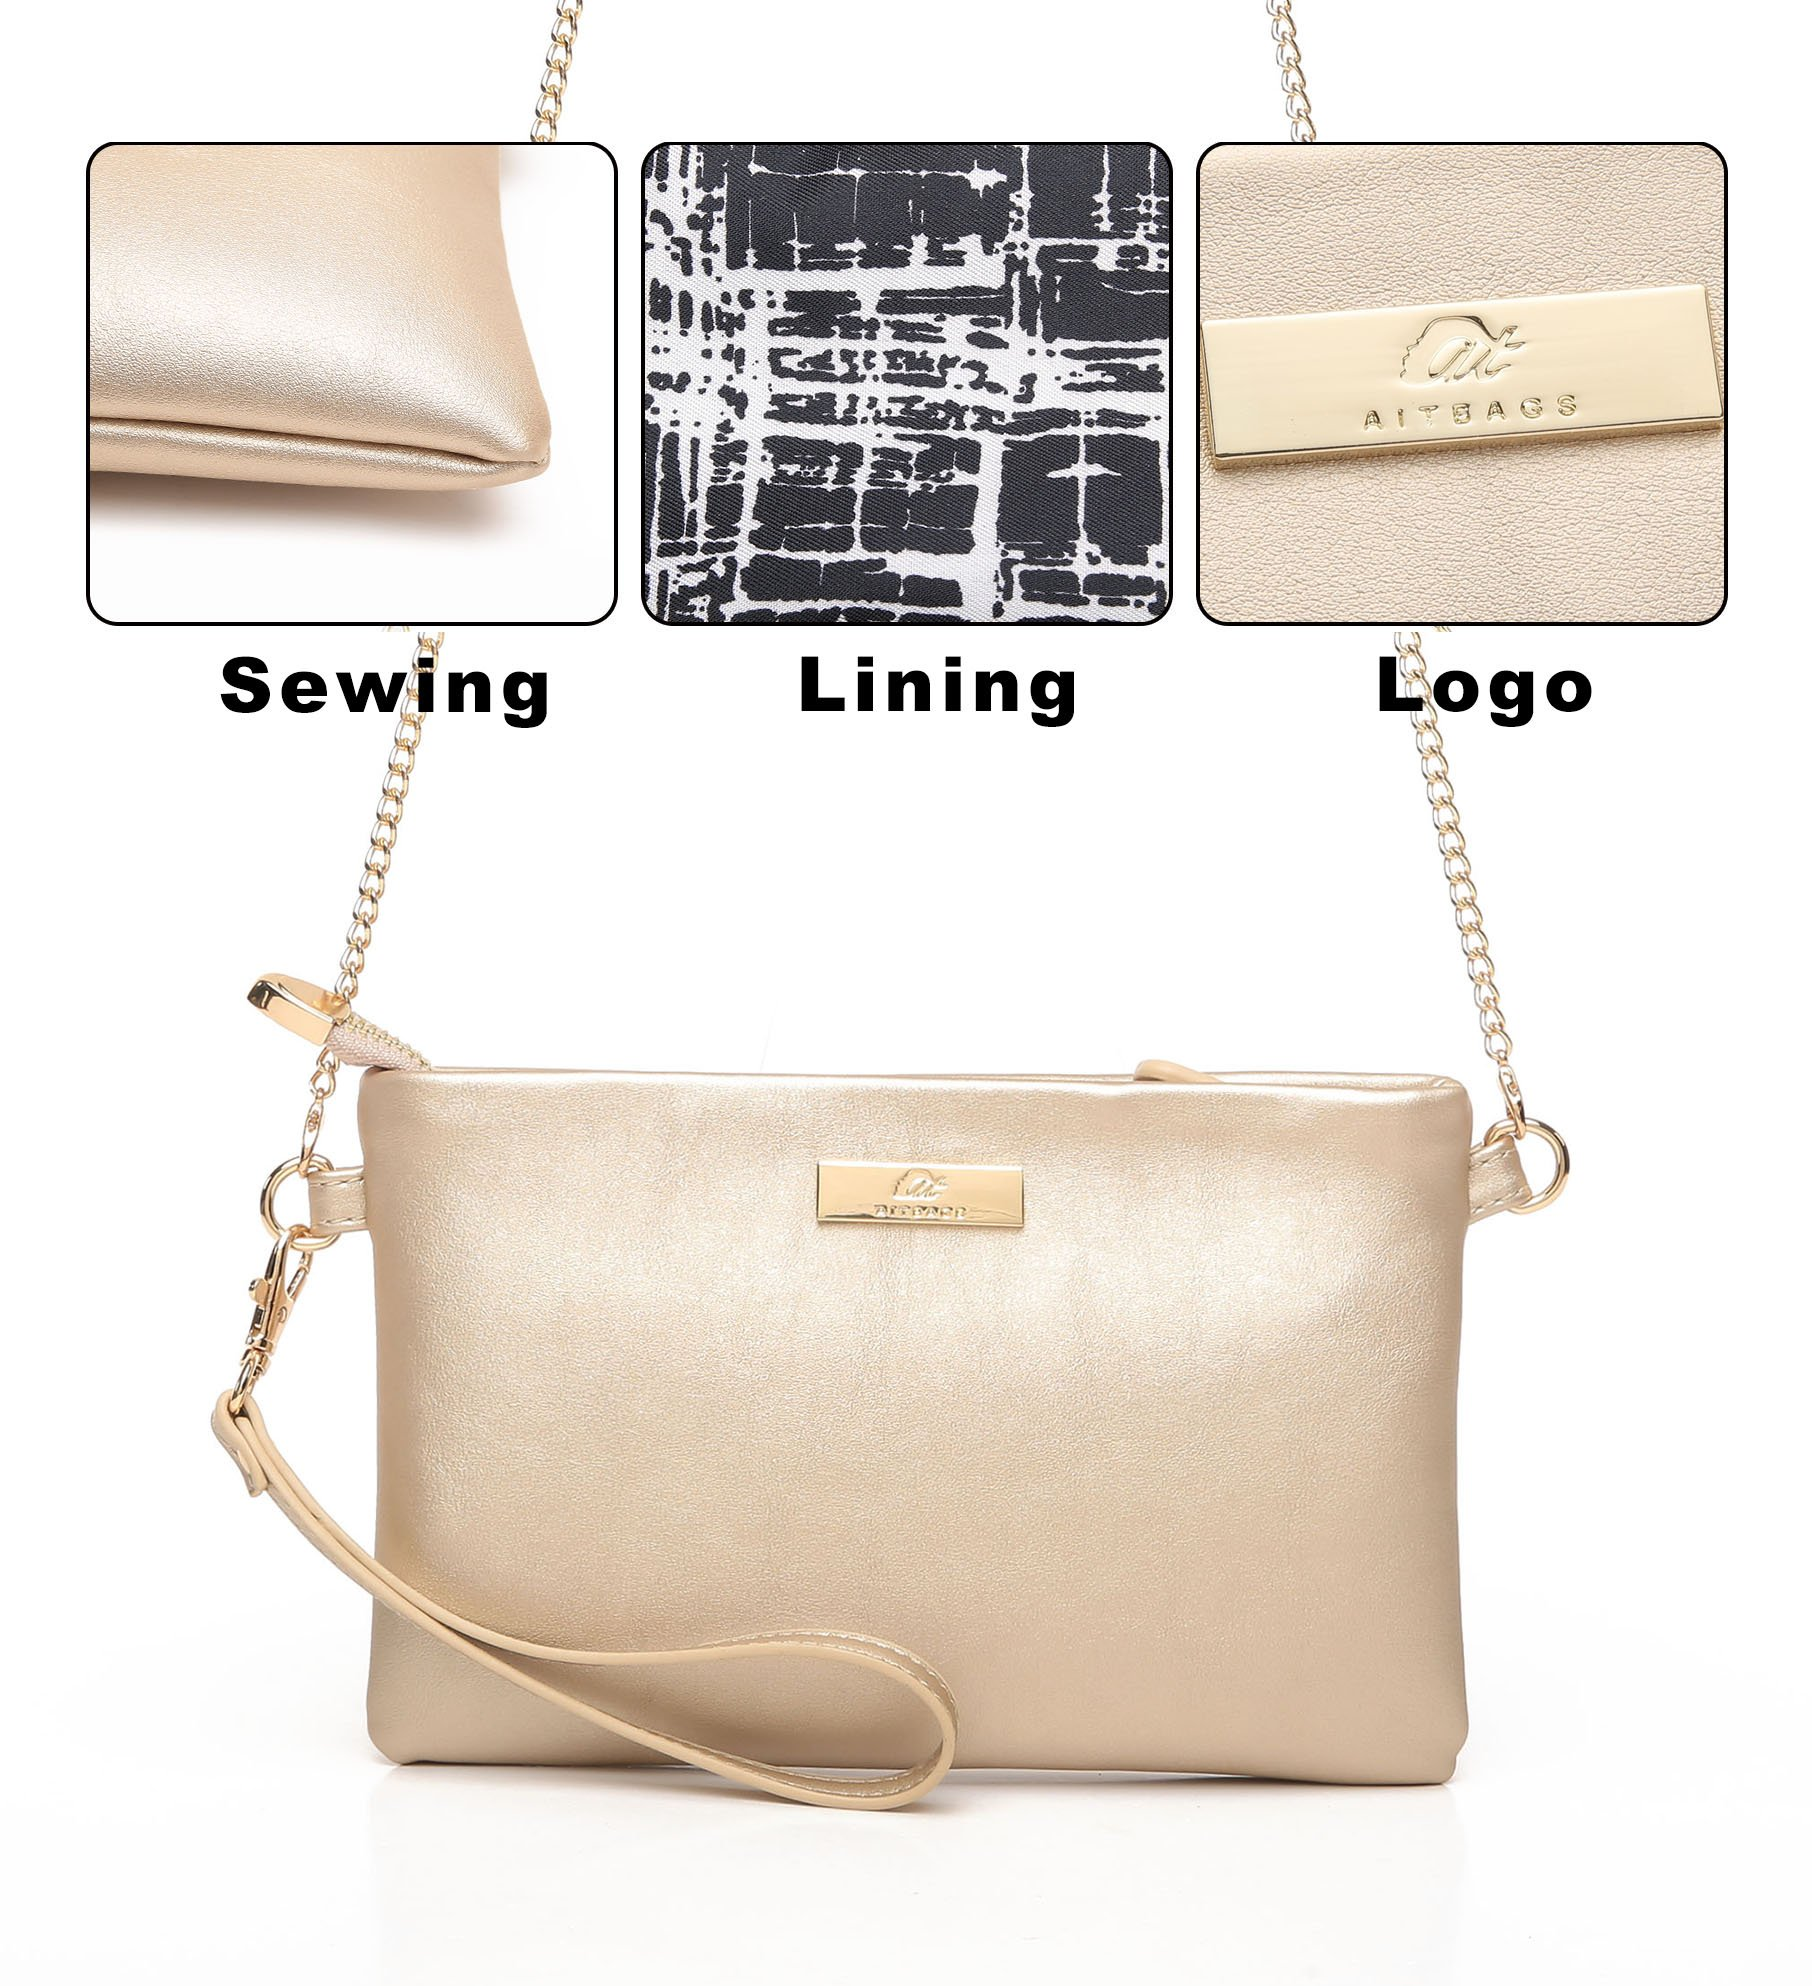 Aitbags Soft PU Leather Wristlet Clutch Crossbody Bag with Chain Strap Cell Phone Purse by Aitbags (Image #5)